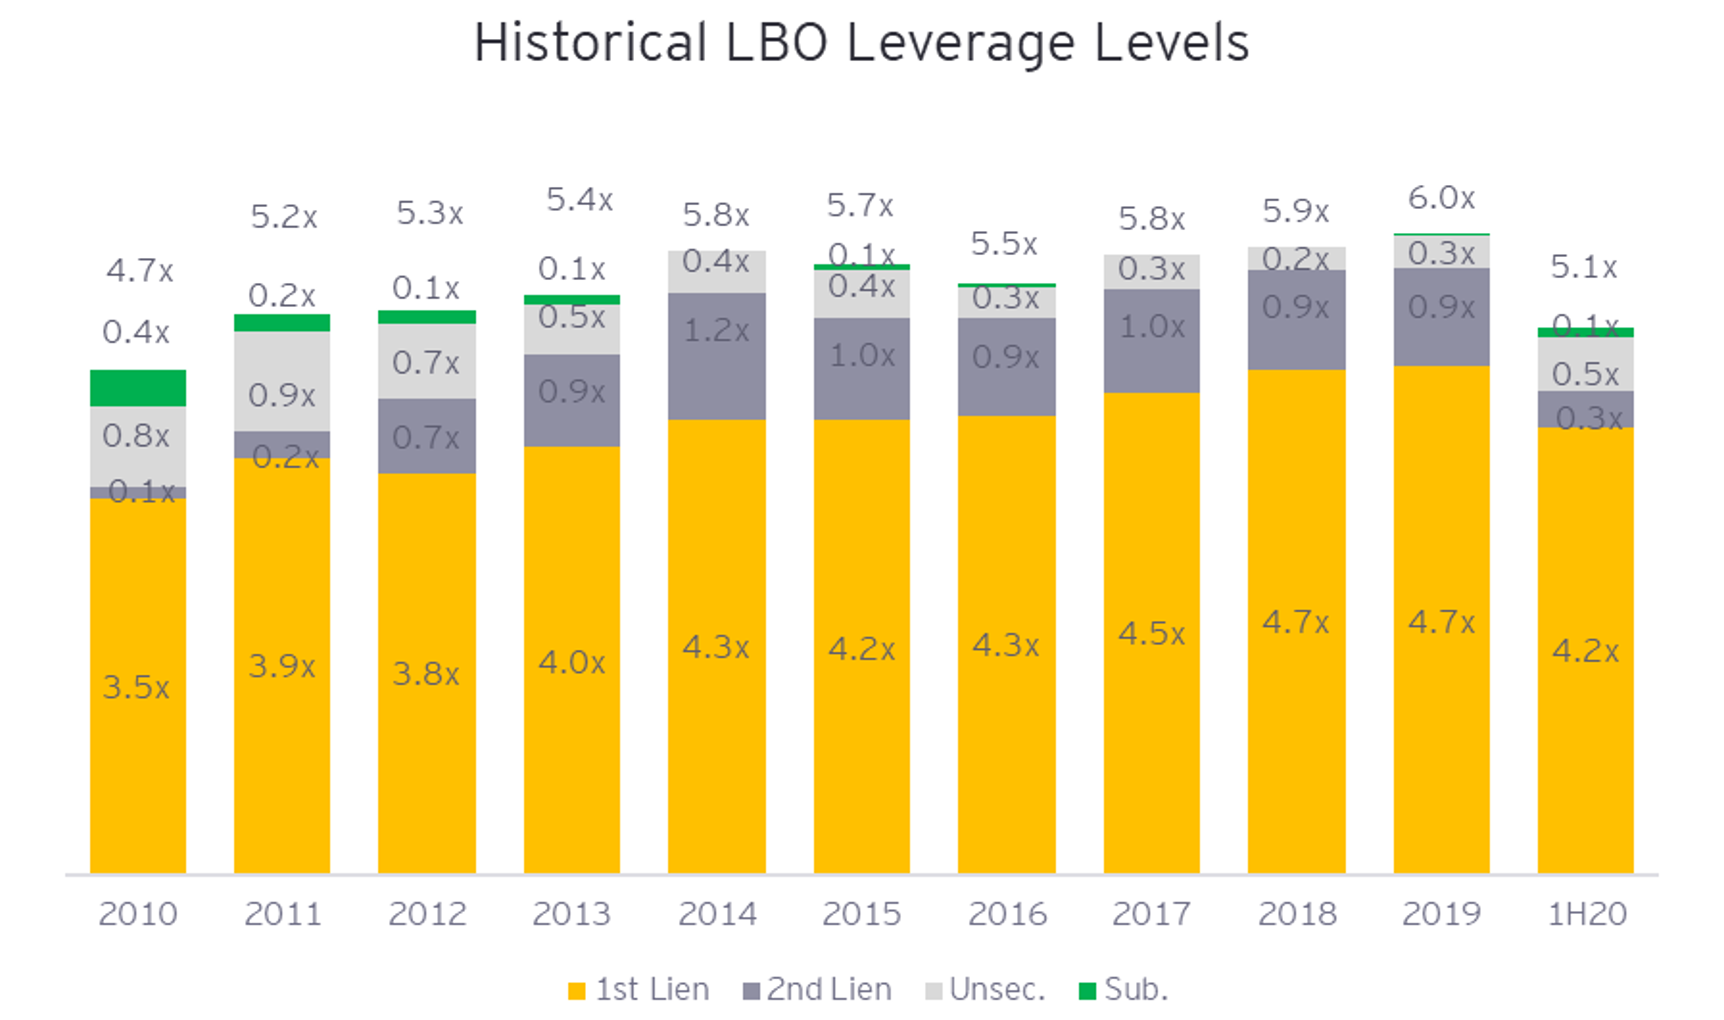 Historical LBO Leverage Levels